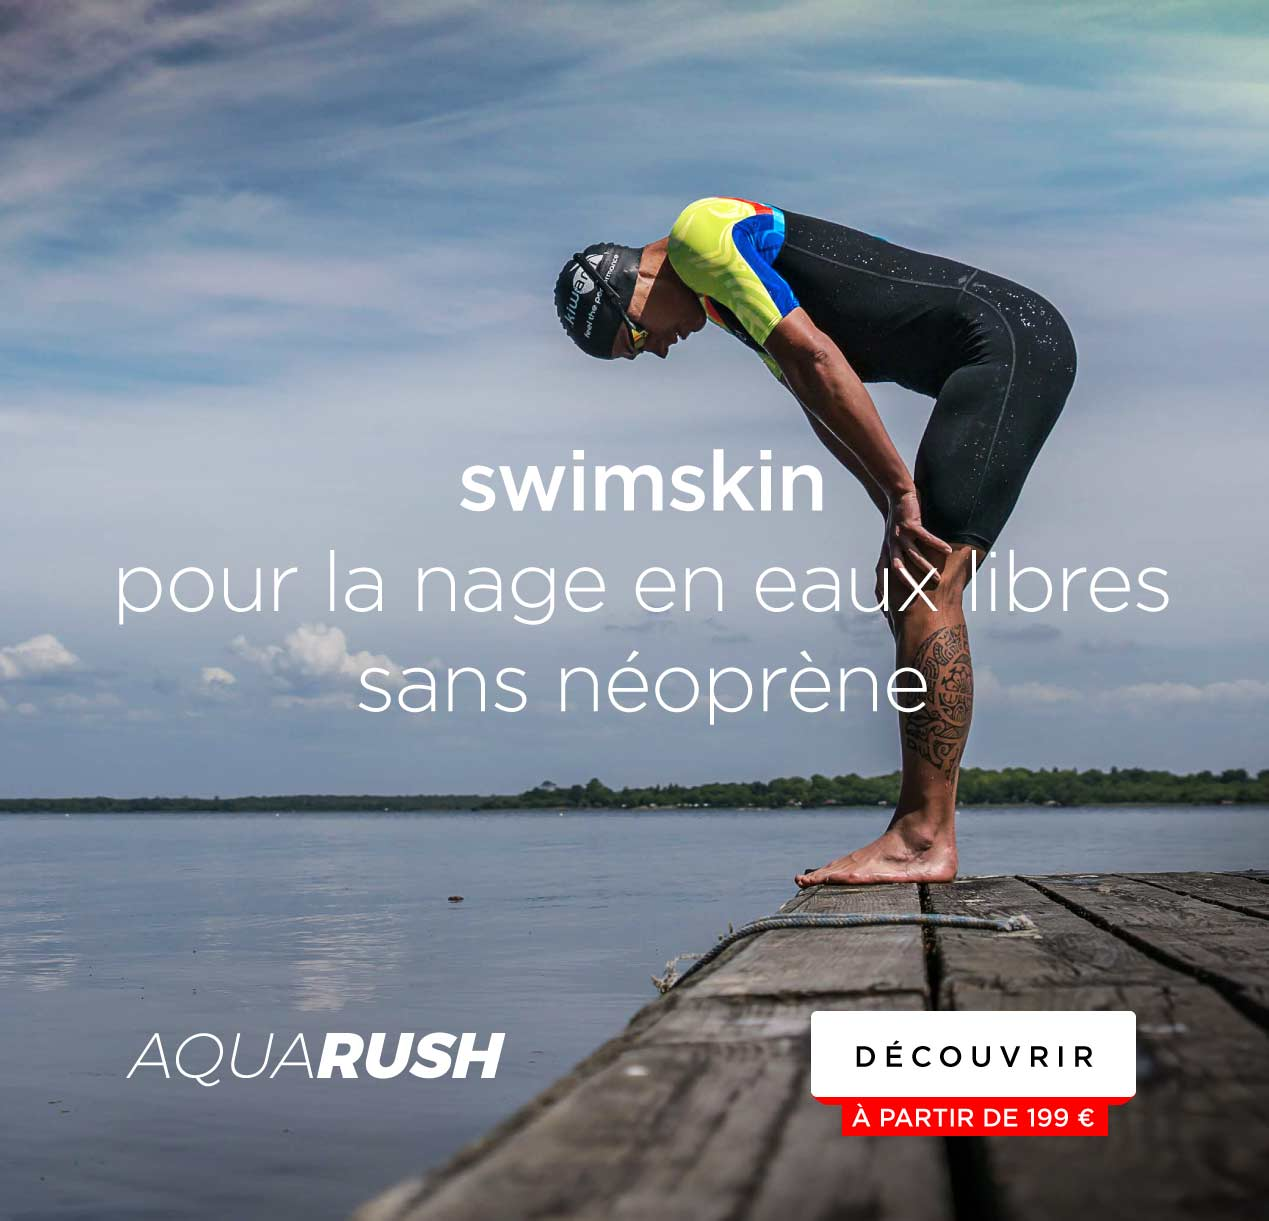 aquarush swimskin